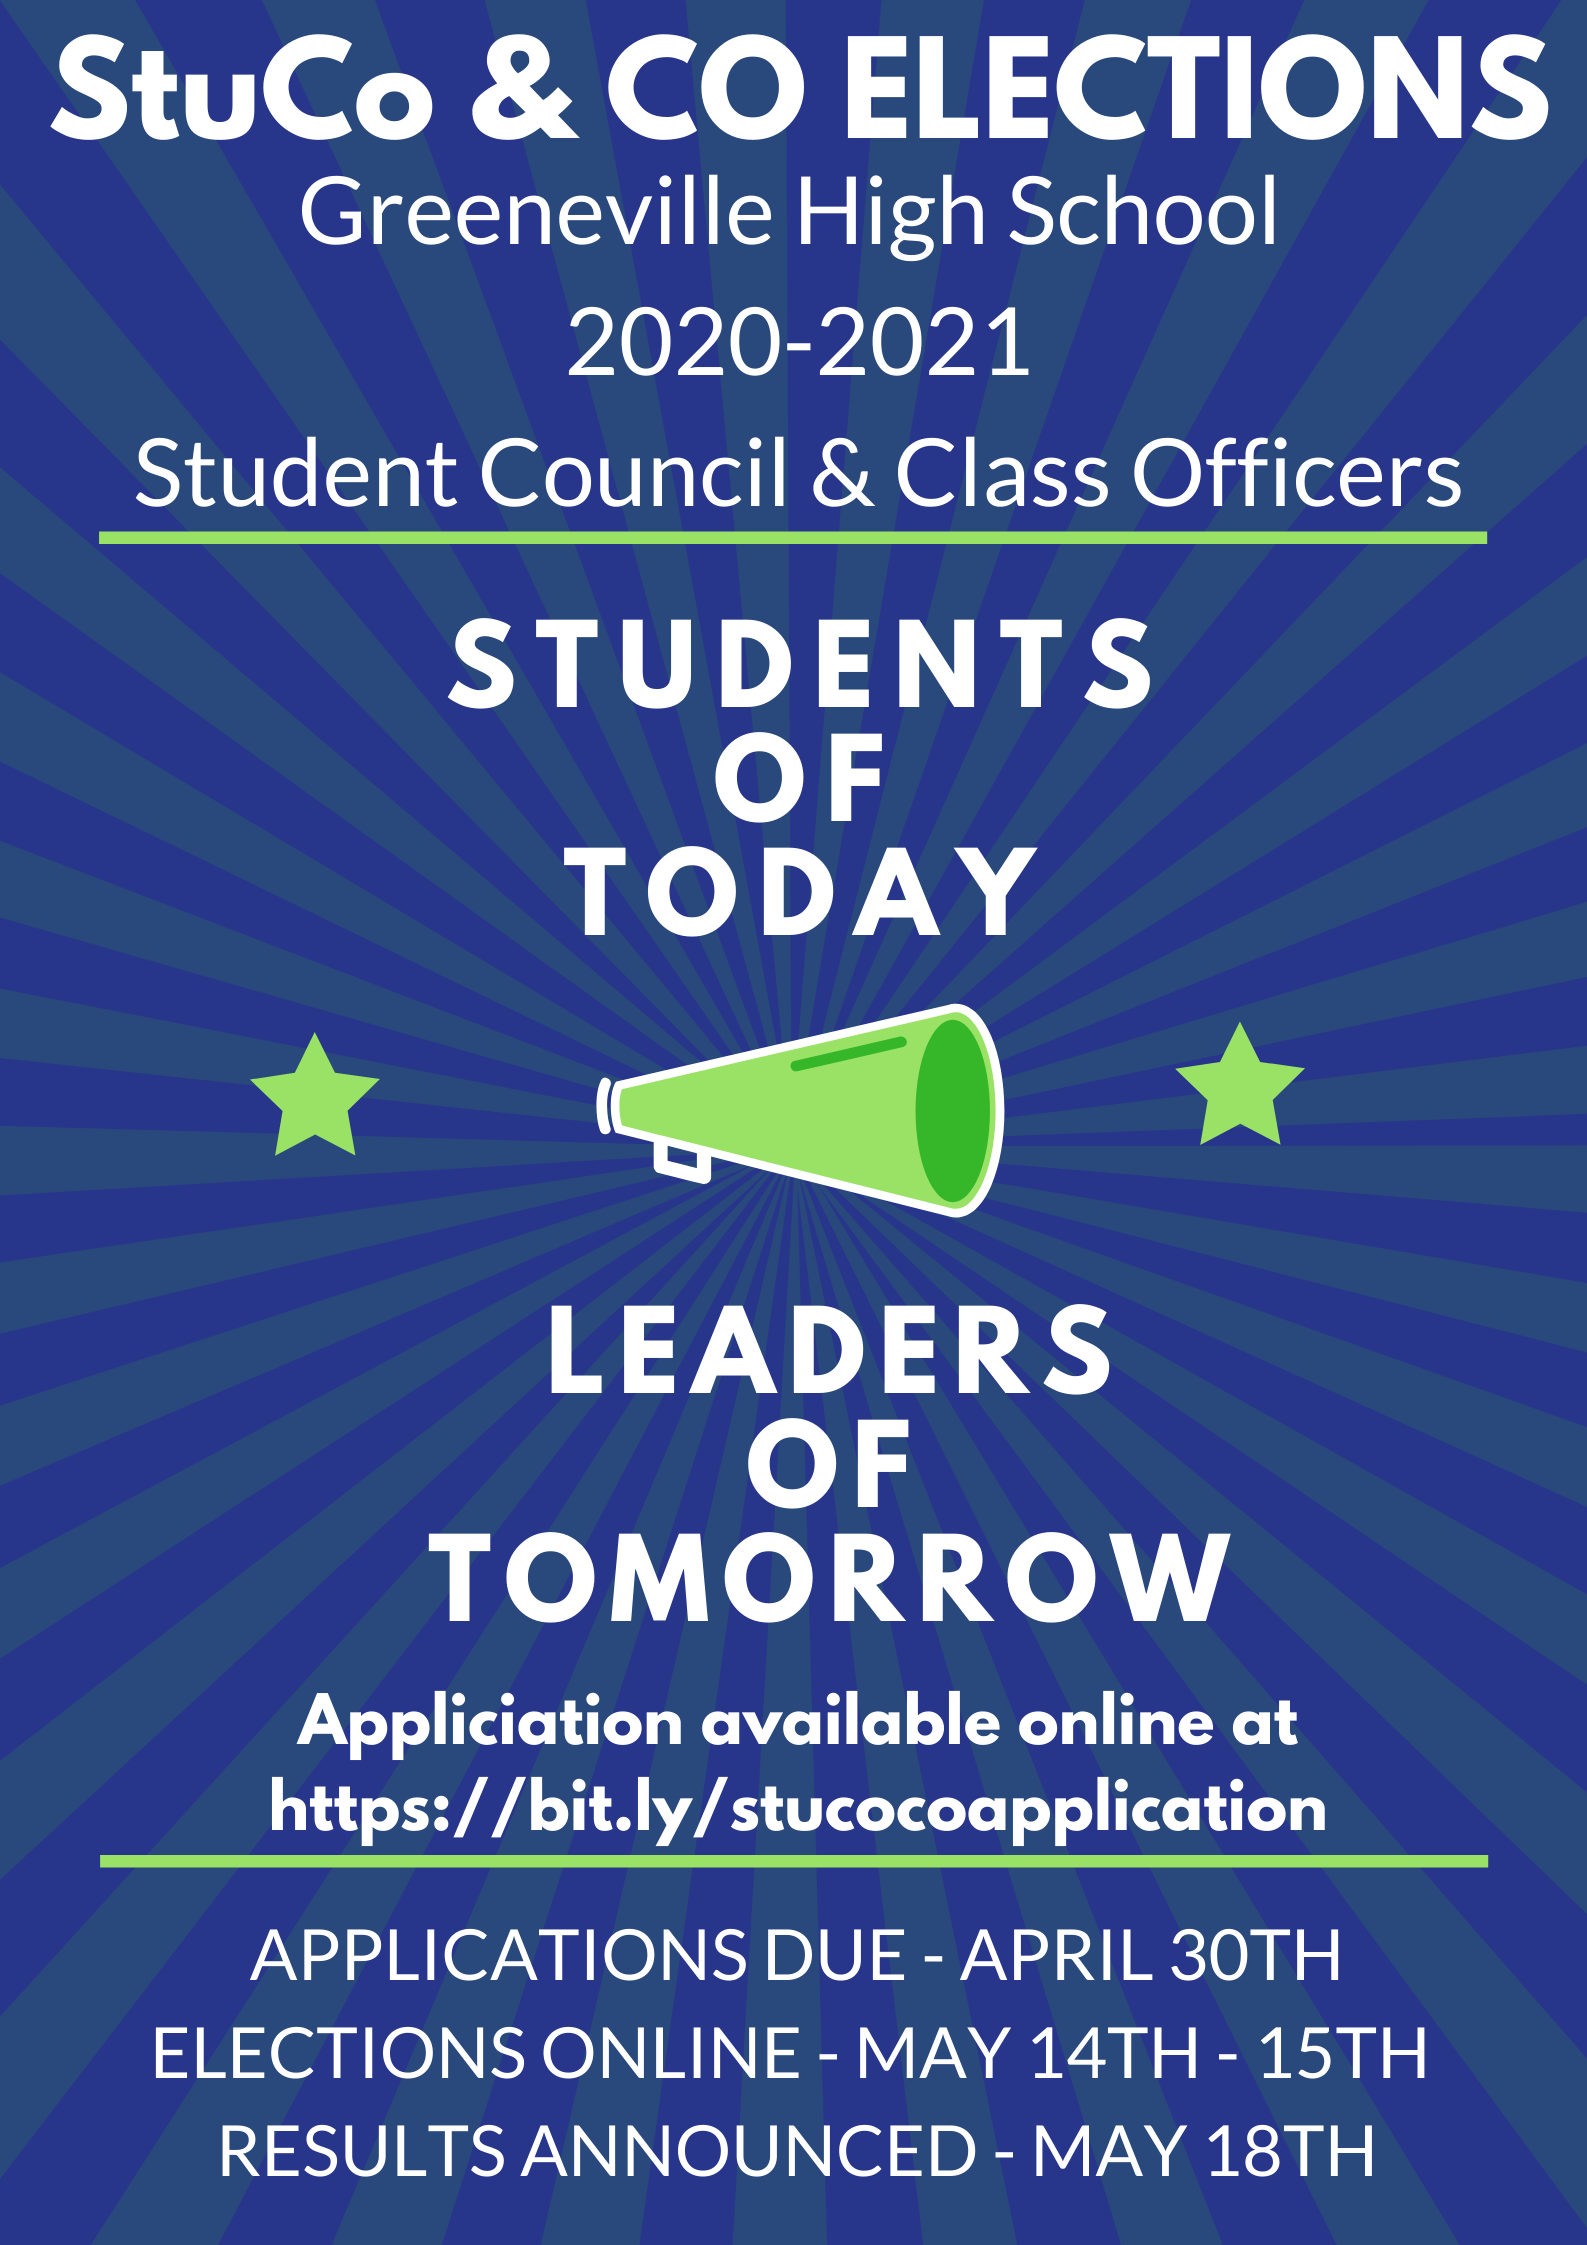 2020-2021 StuCo & CO Elections - May 14th - 15th